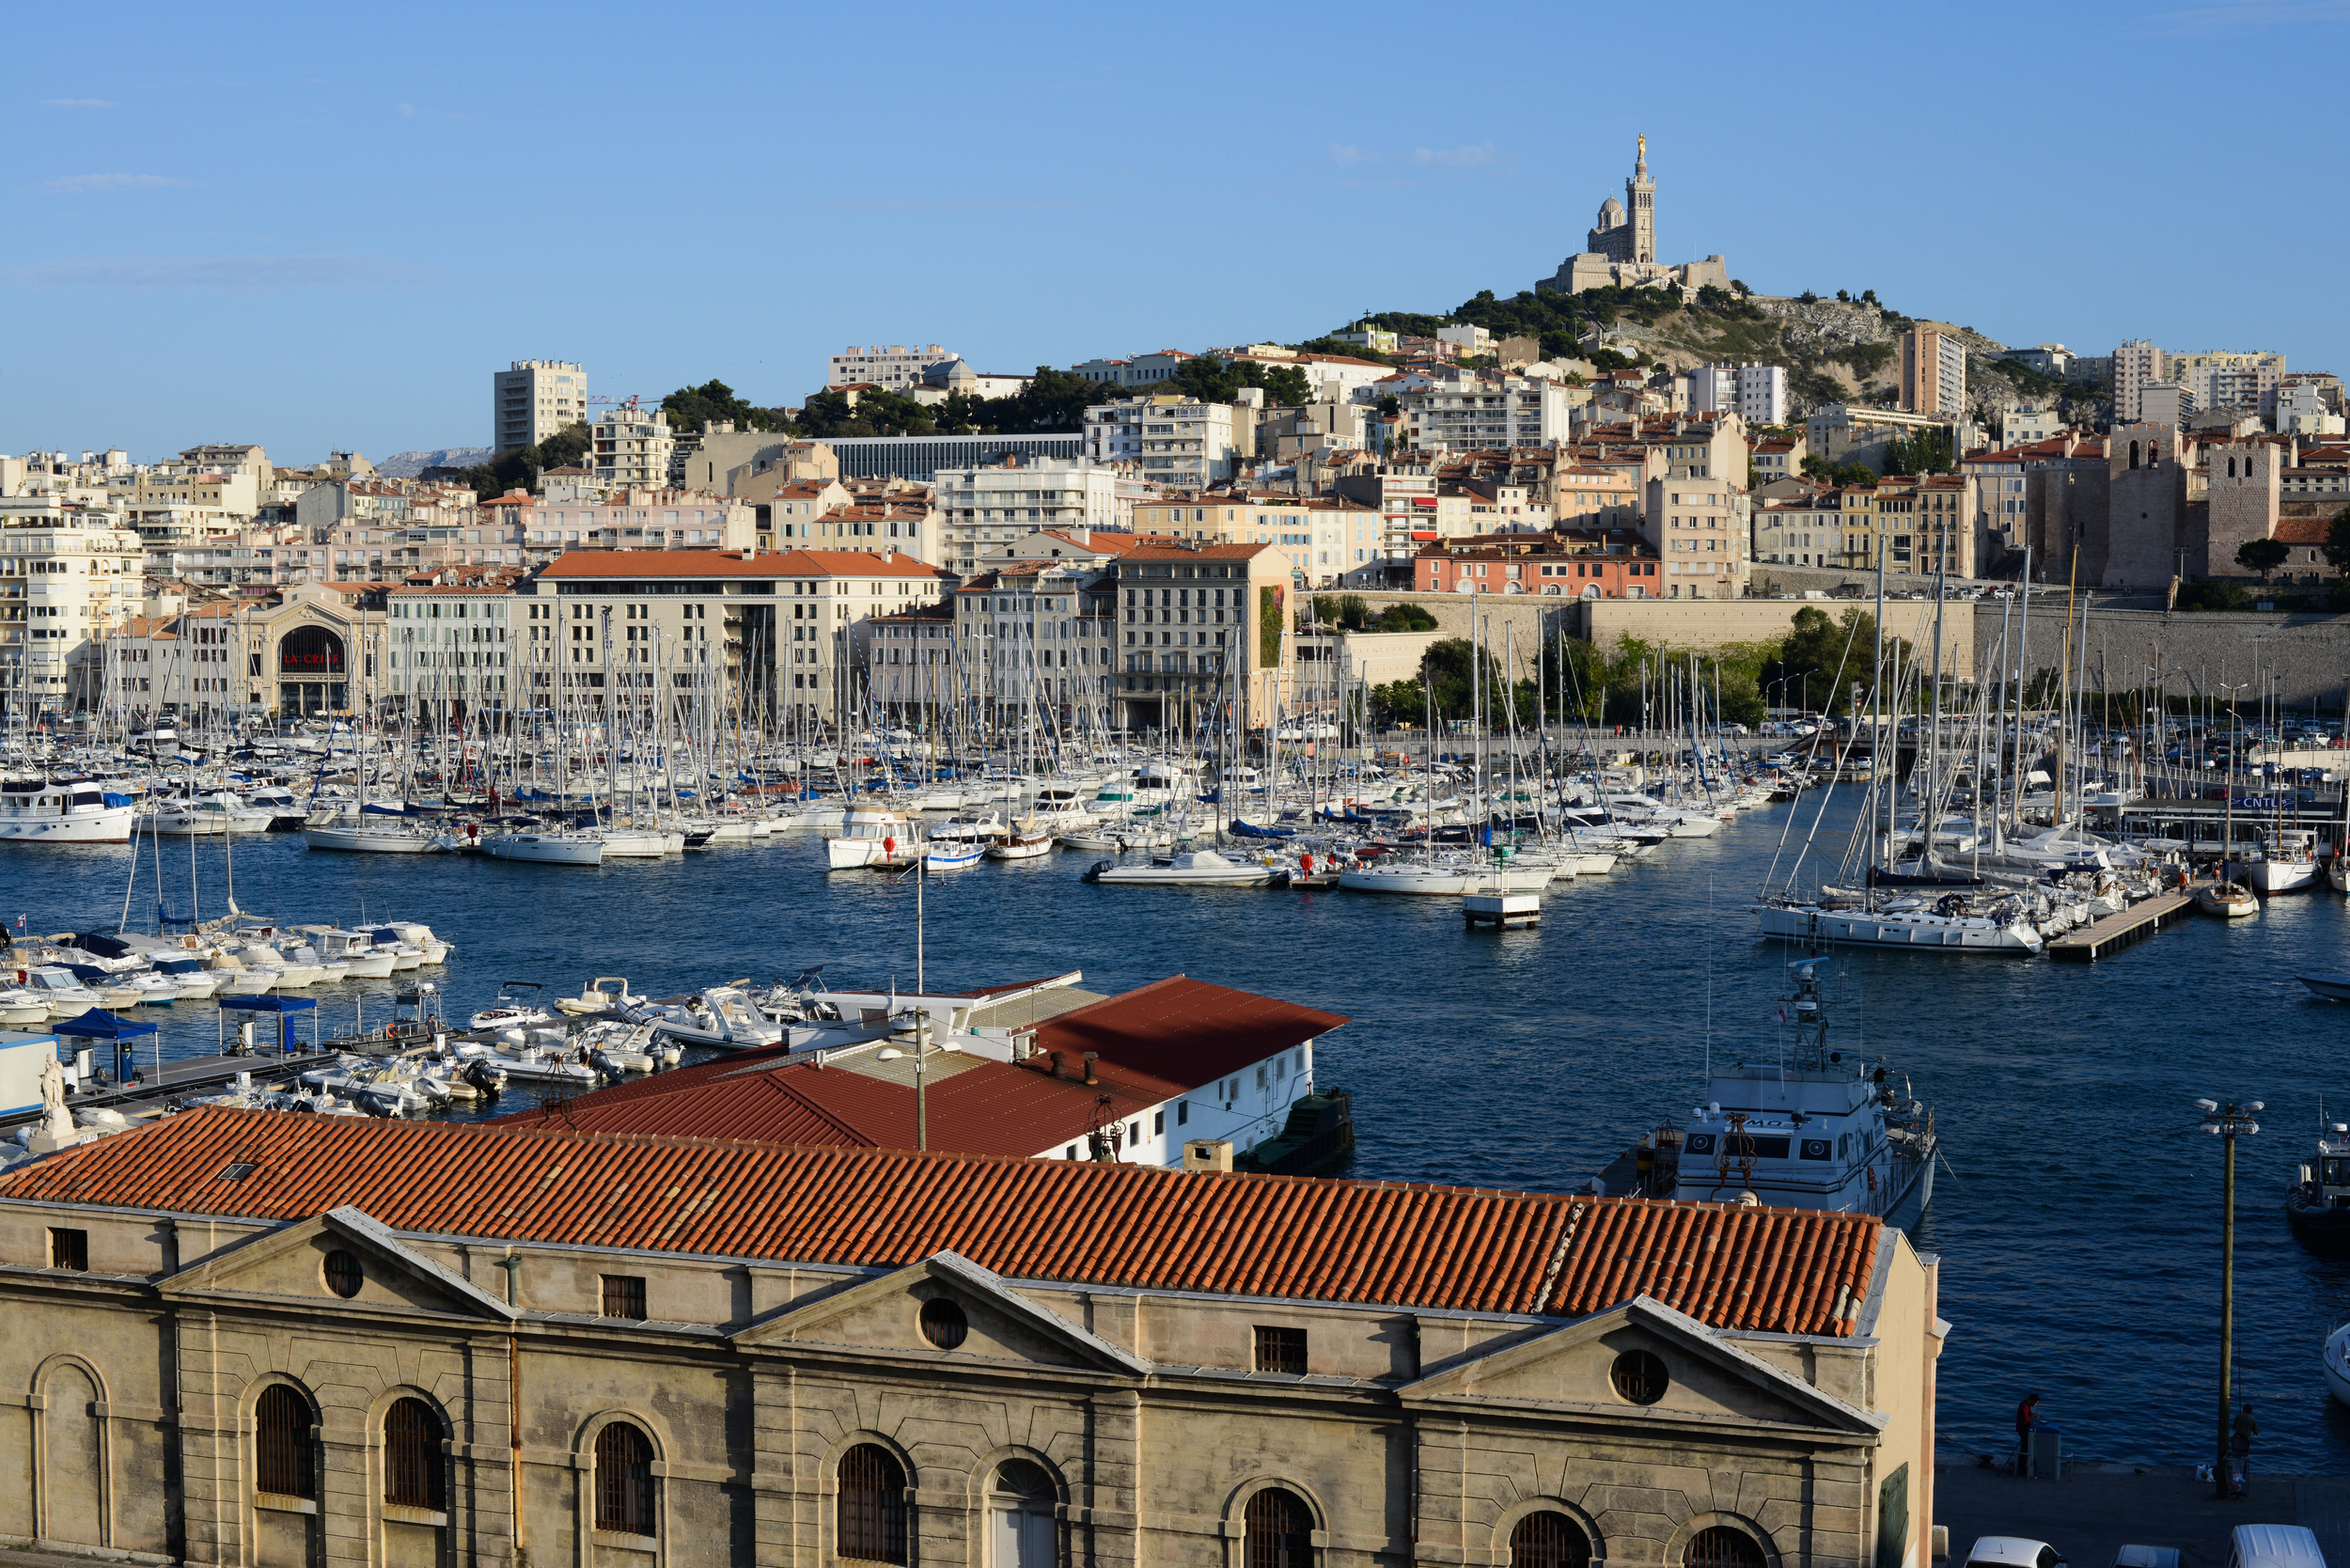 The old port of Marseille, France, with Notre-Dame de la Garde basilica in the background, on August 20, 2014.